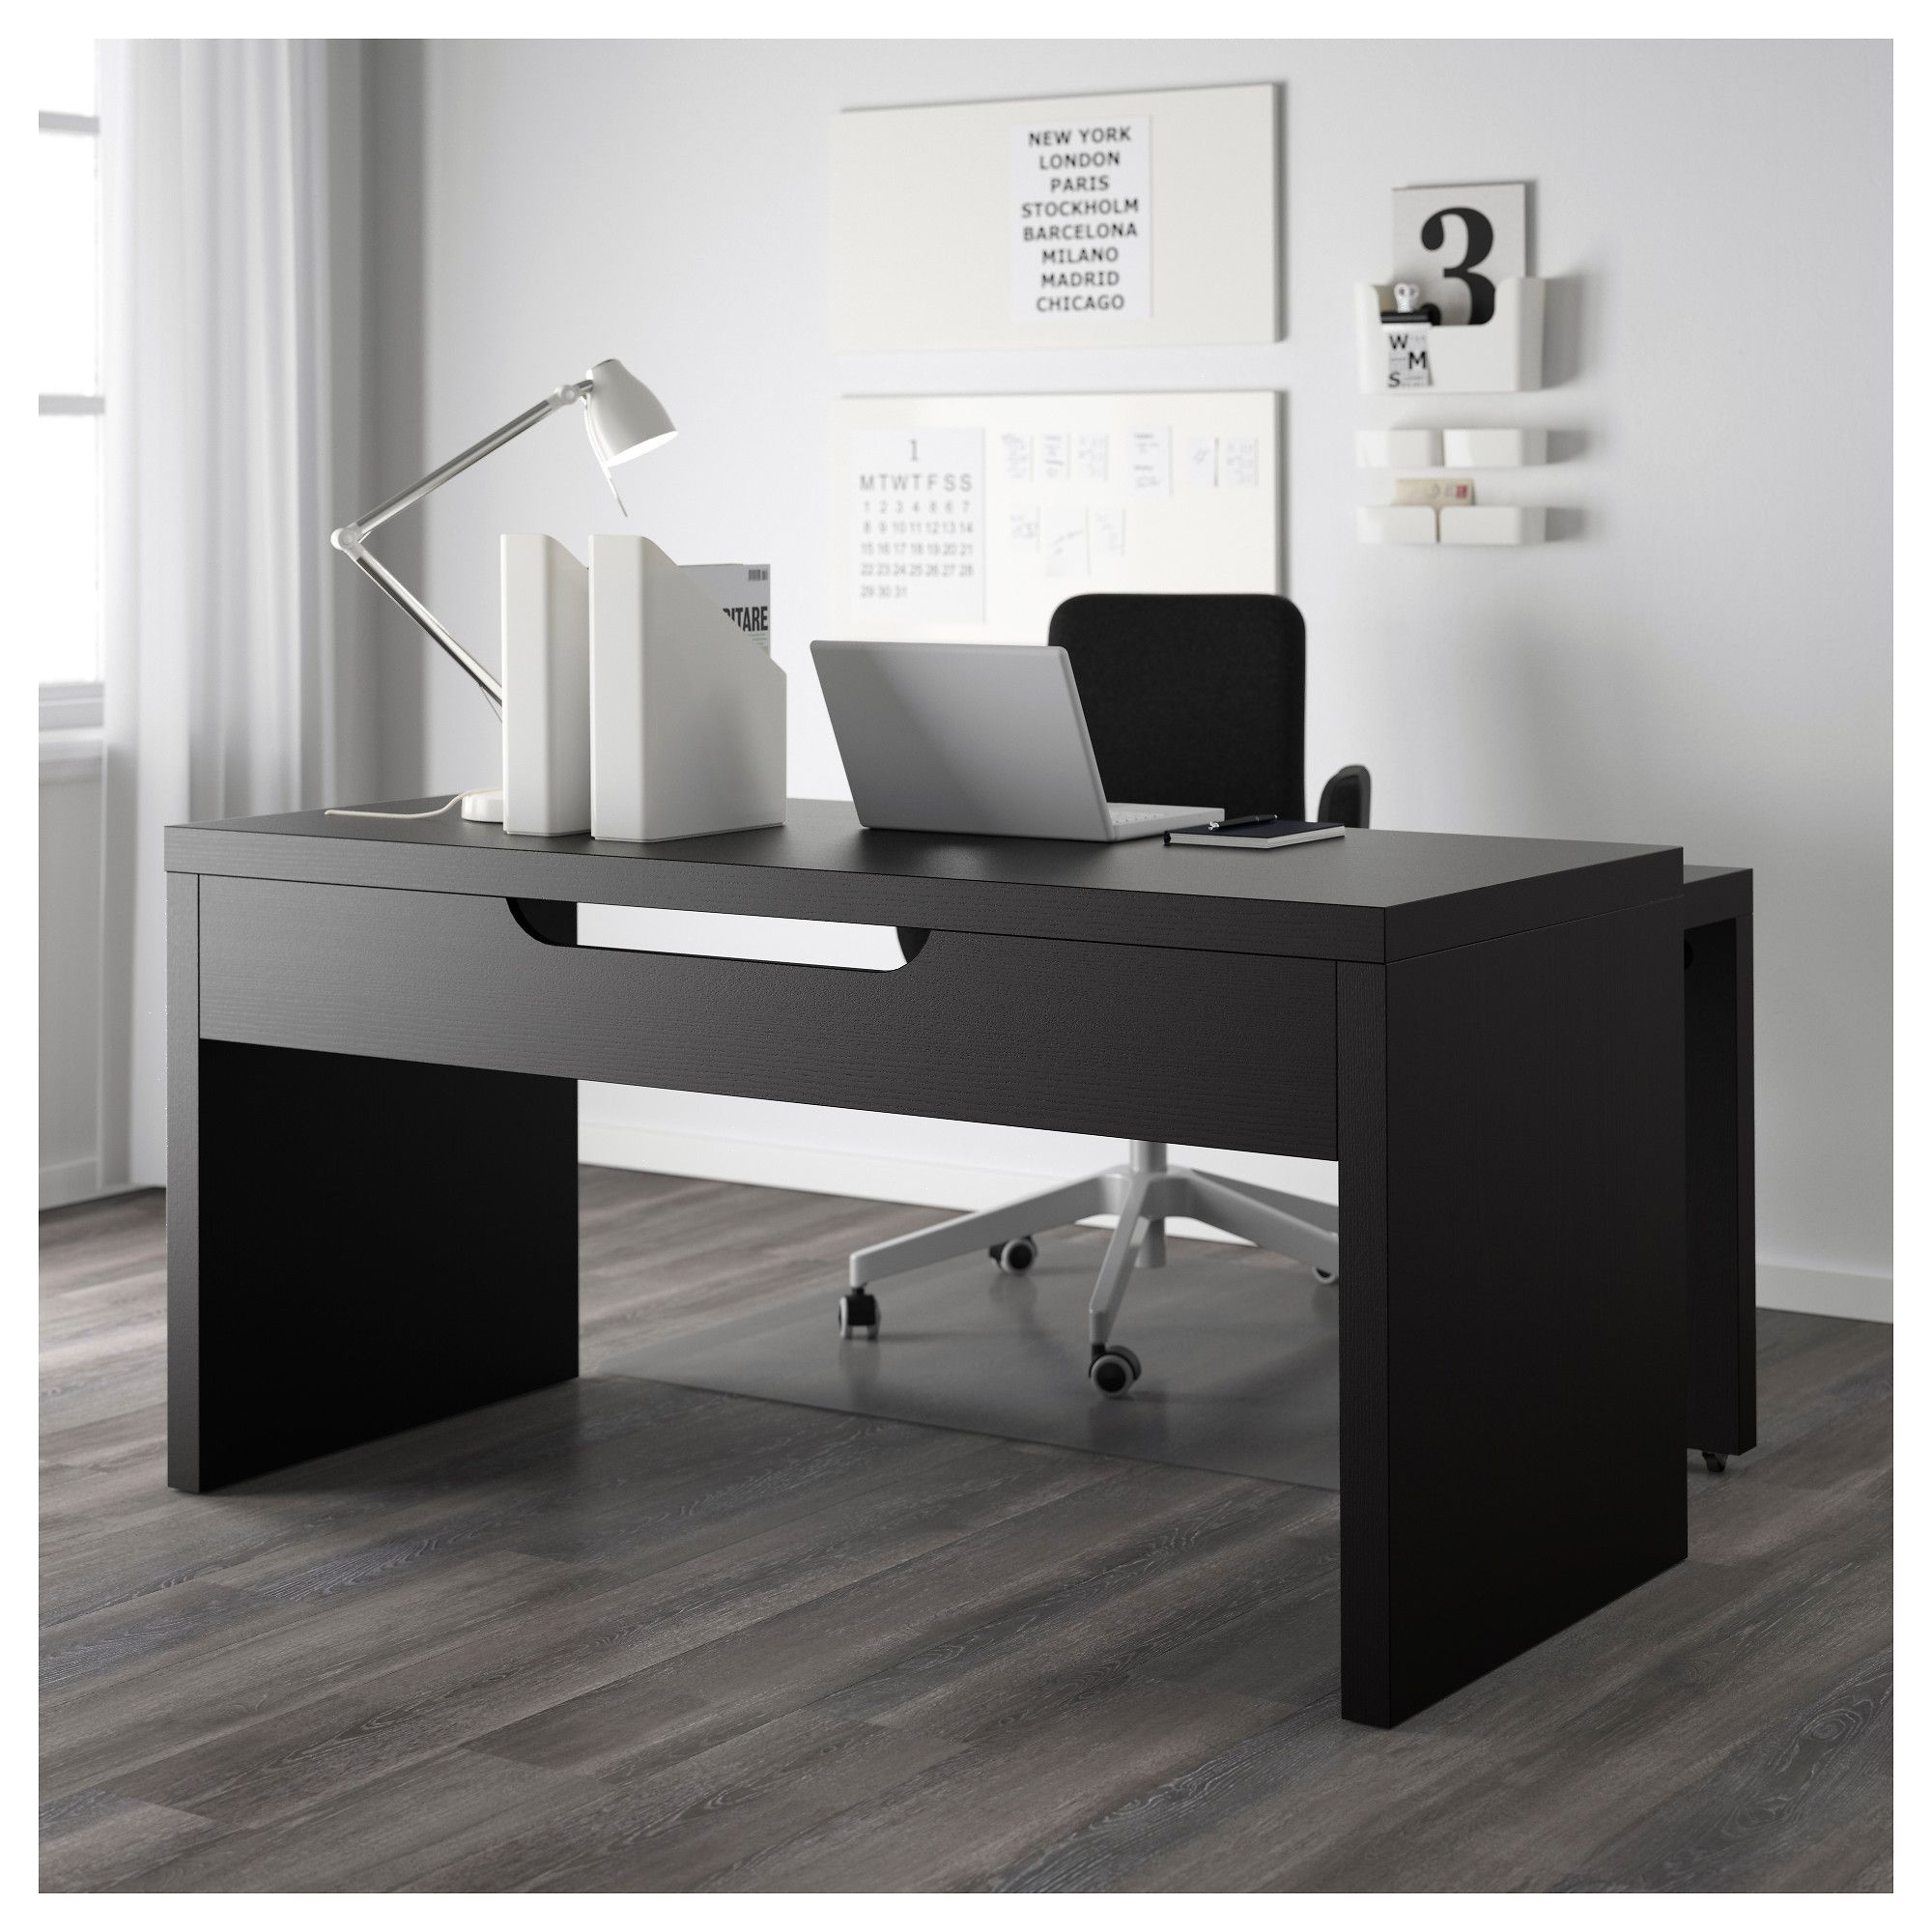 Ikea Malm Desk With Pull Out Panel Black Brown Modern Home